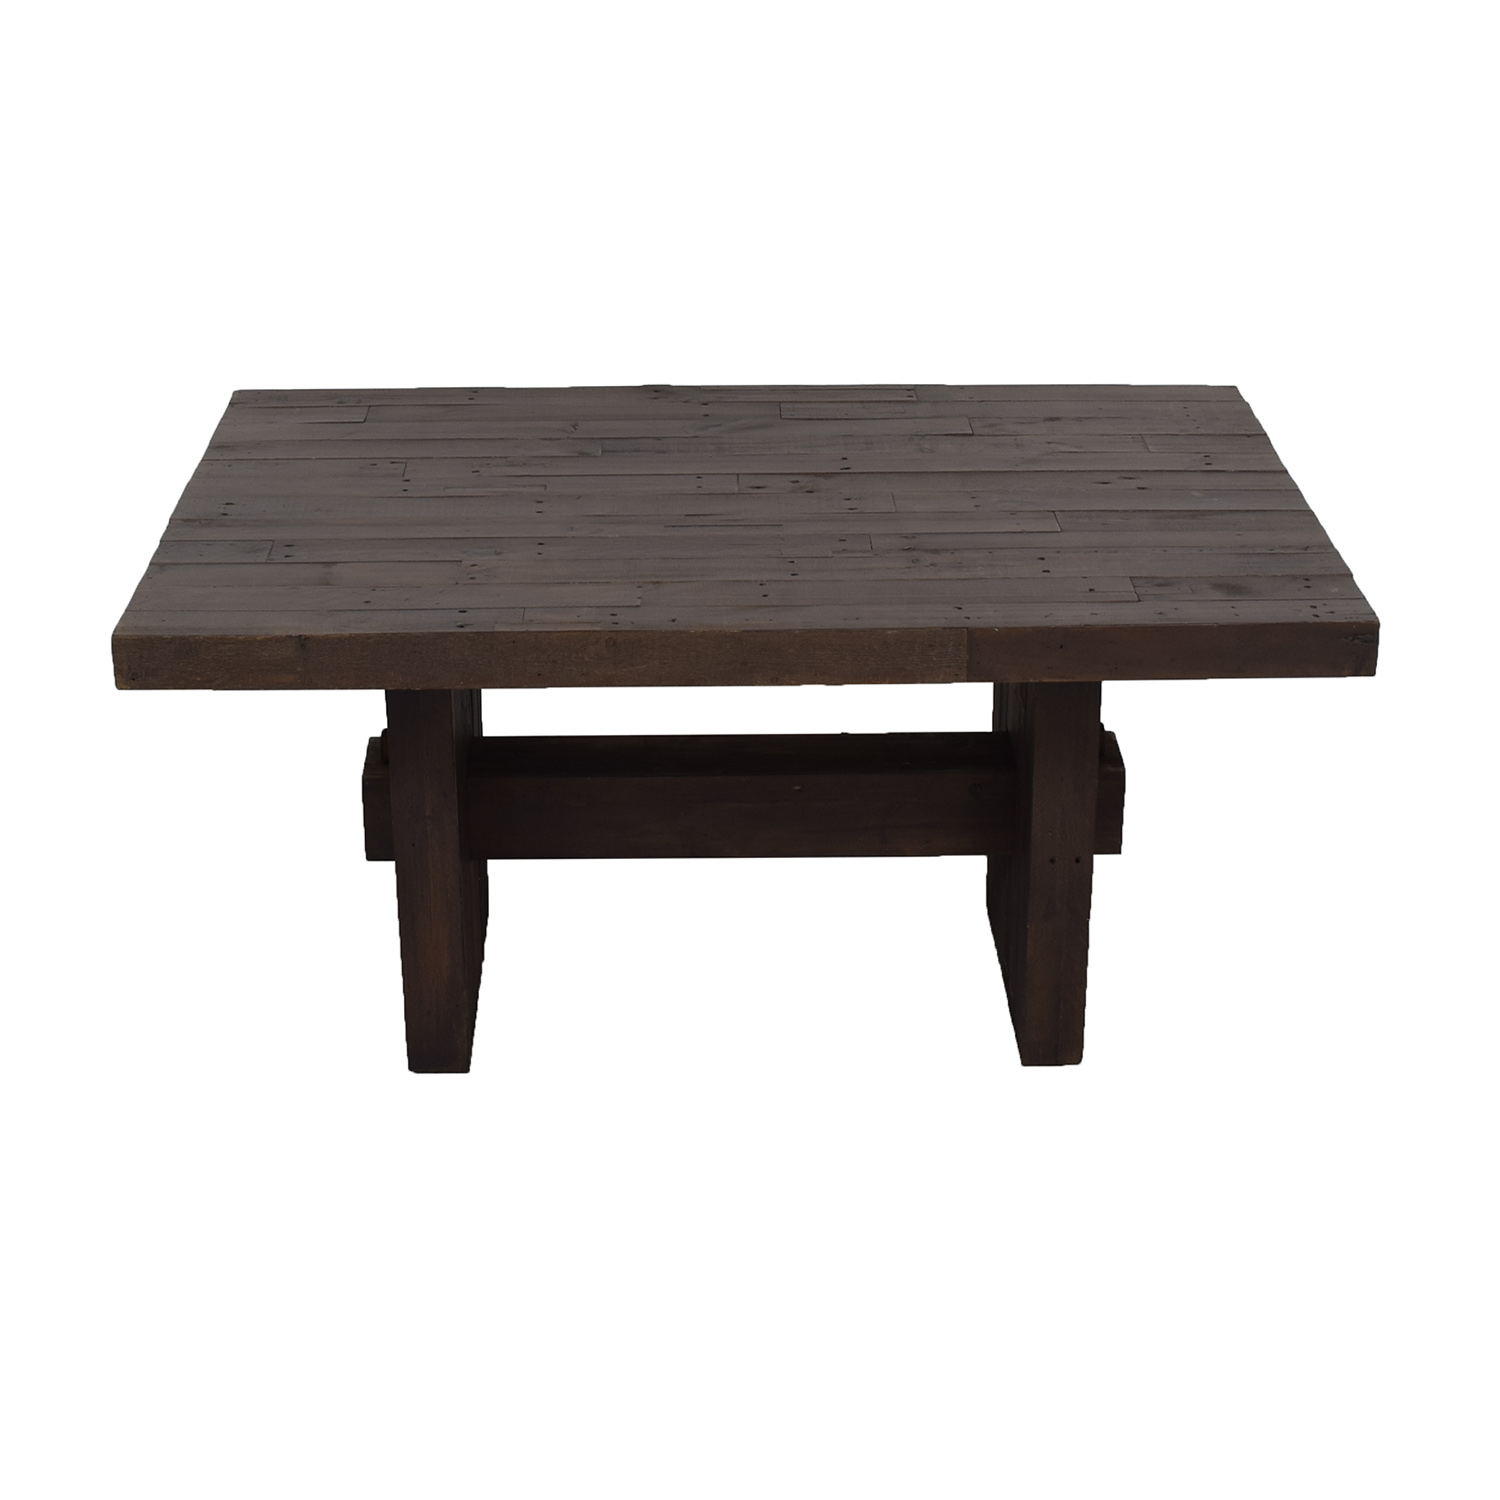 West Elm West Elm Emmerson Reclaimed Wood Dining Table on sale